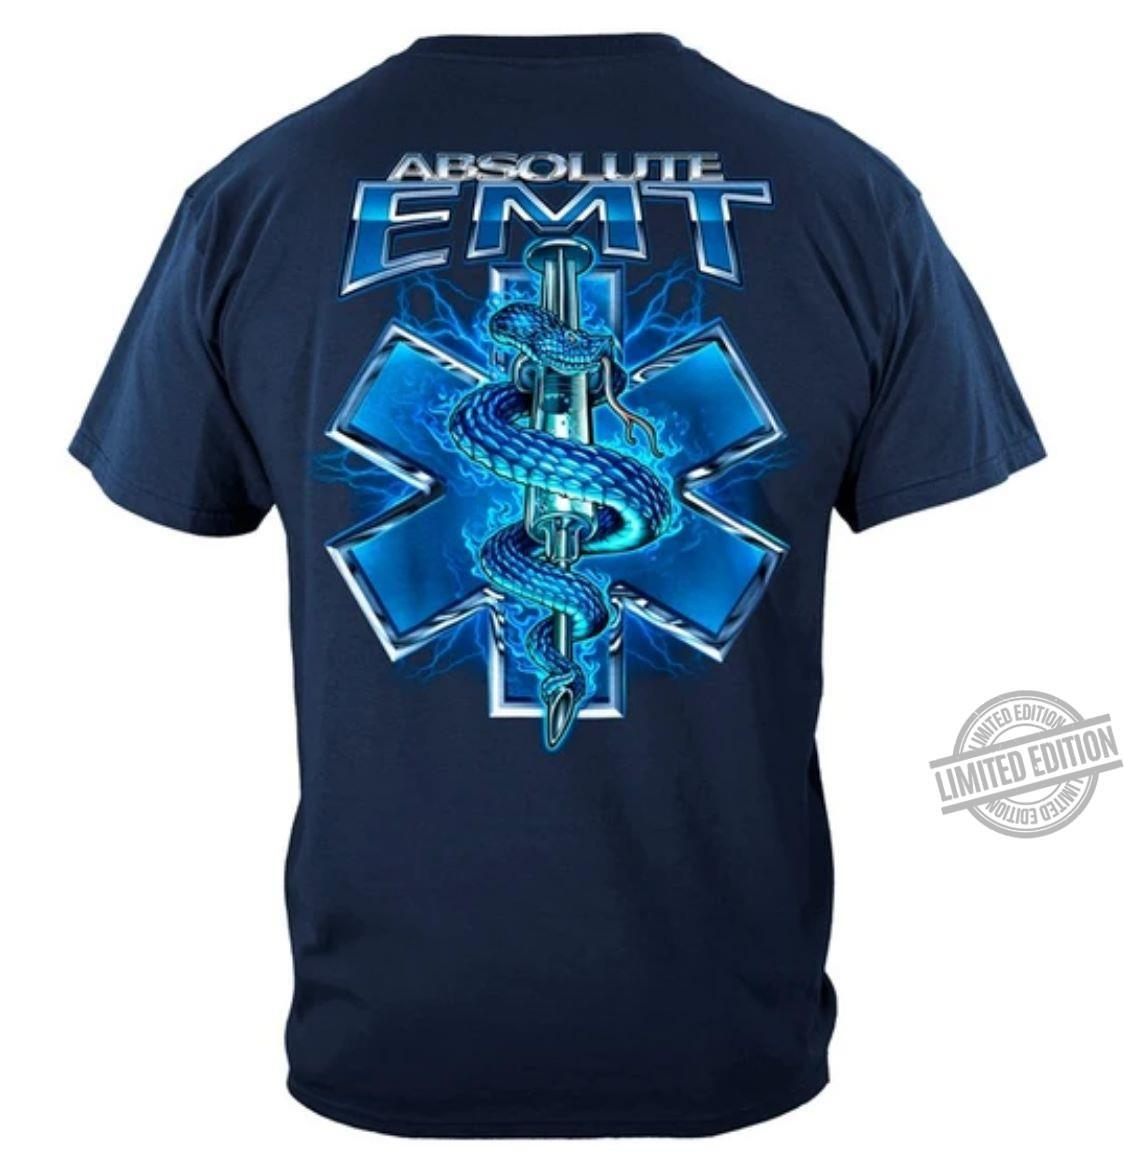 Absolute Emt Shirt